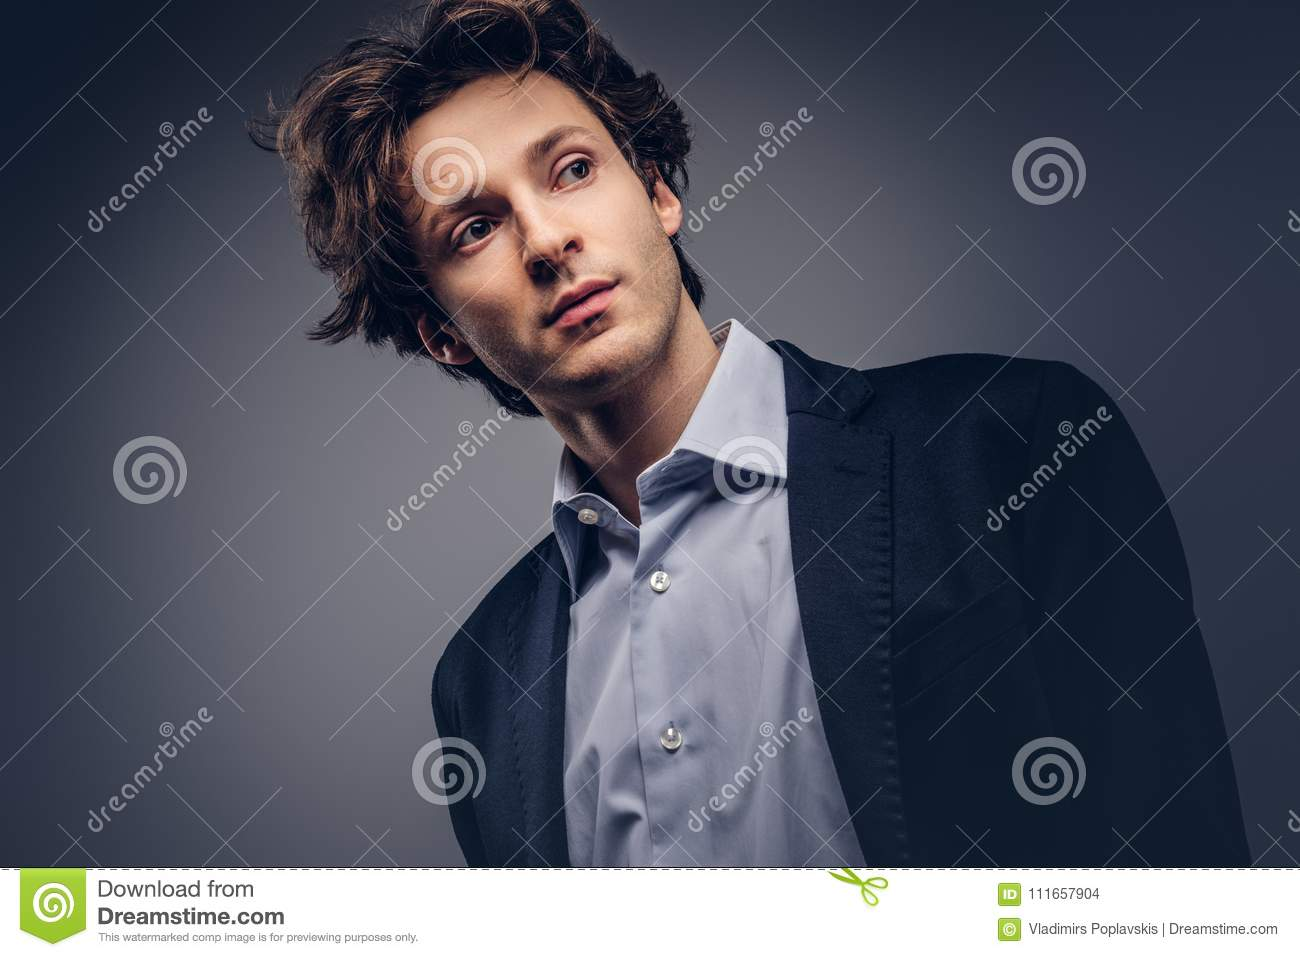 Studio Portrait Of A Stylish Sensual Male With Hairstyle In A Casual